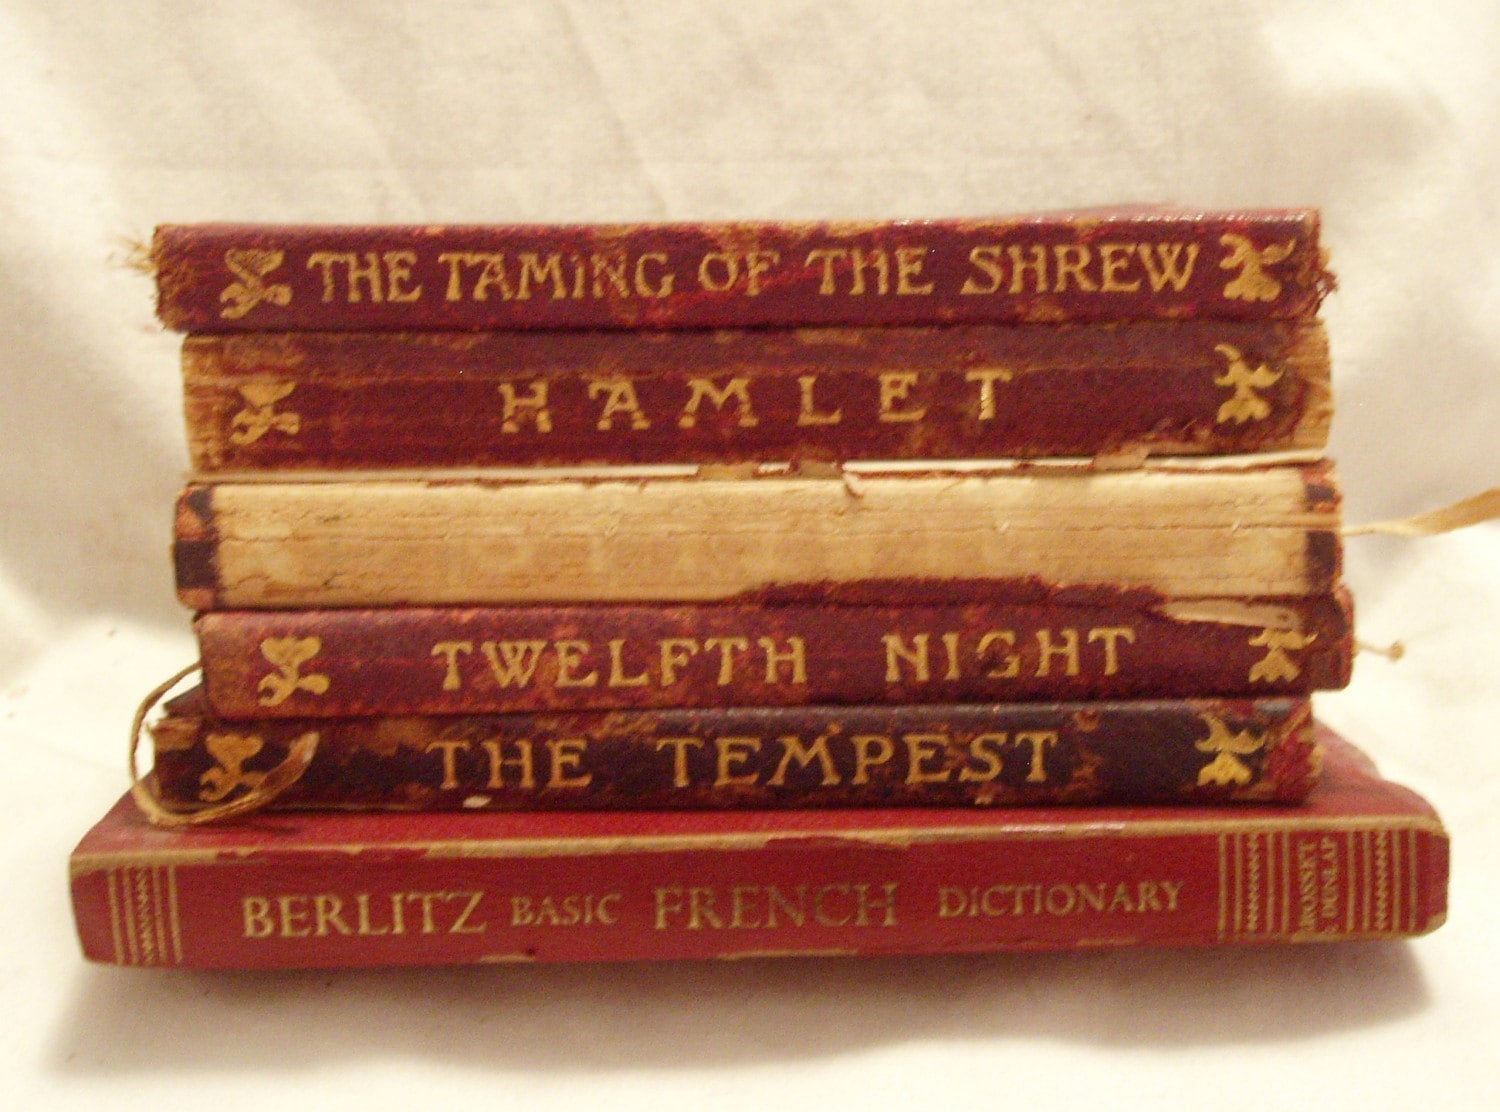 Vintage Shakespeare Books Miniature Books The Temple by echoart: https://www.etsy.com/listing/36721242/vintage-shakespeare-books...